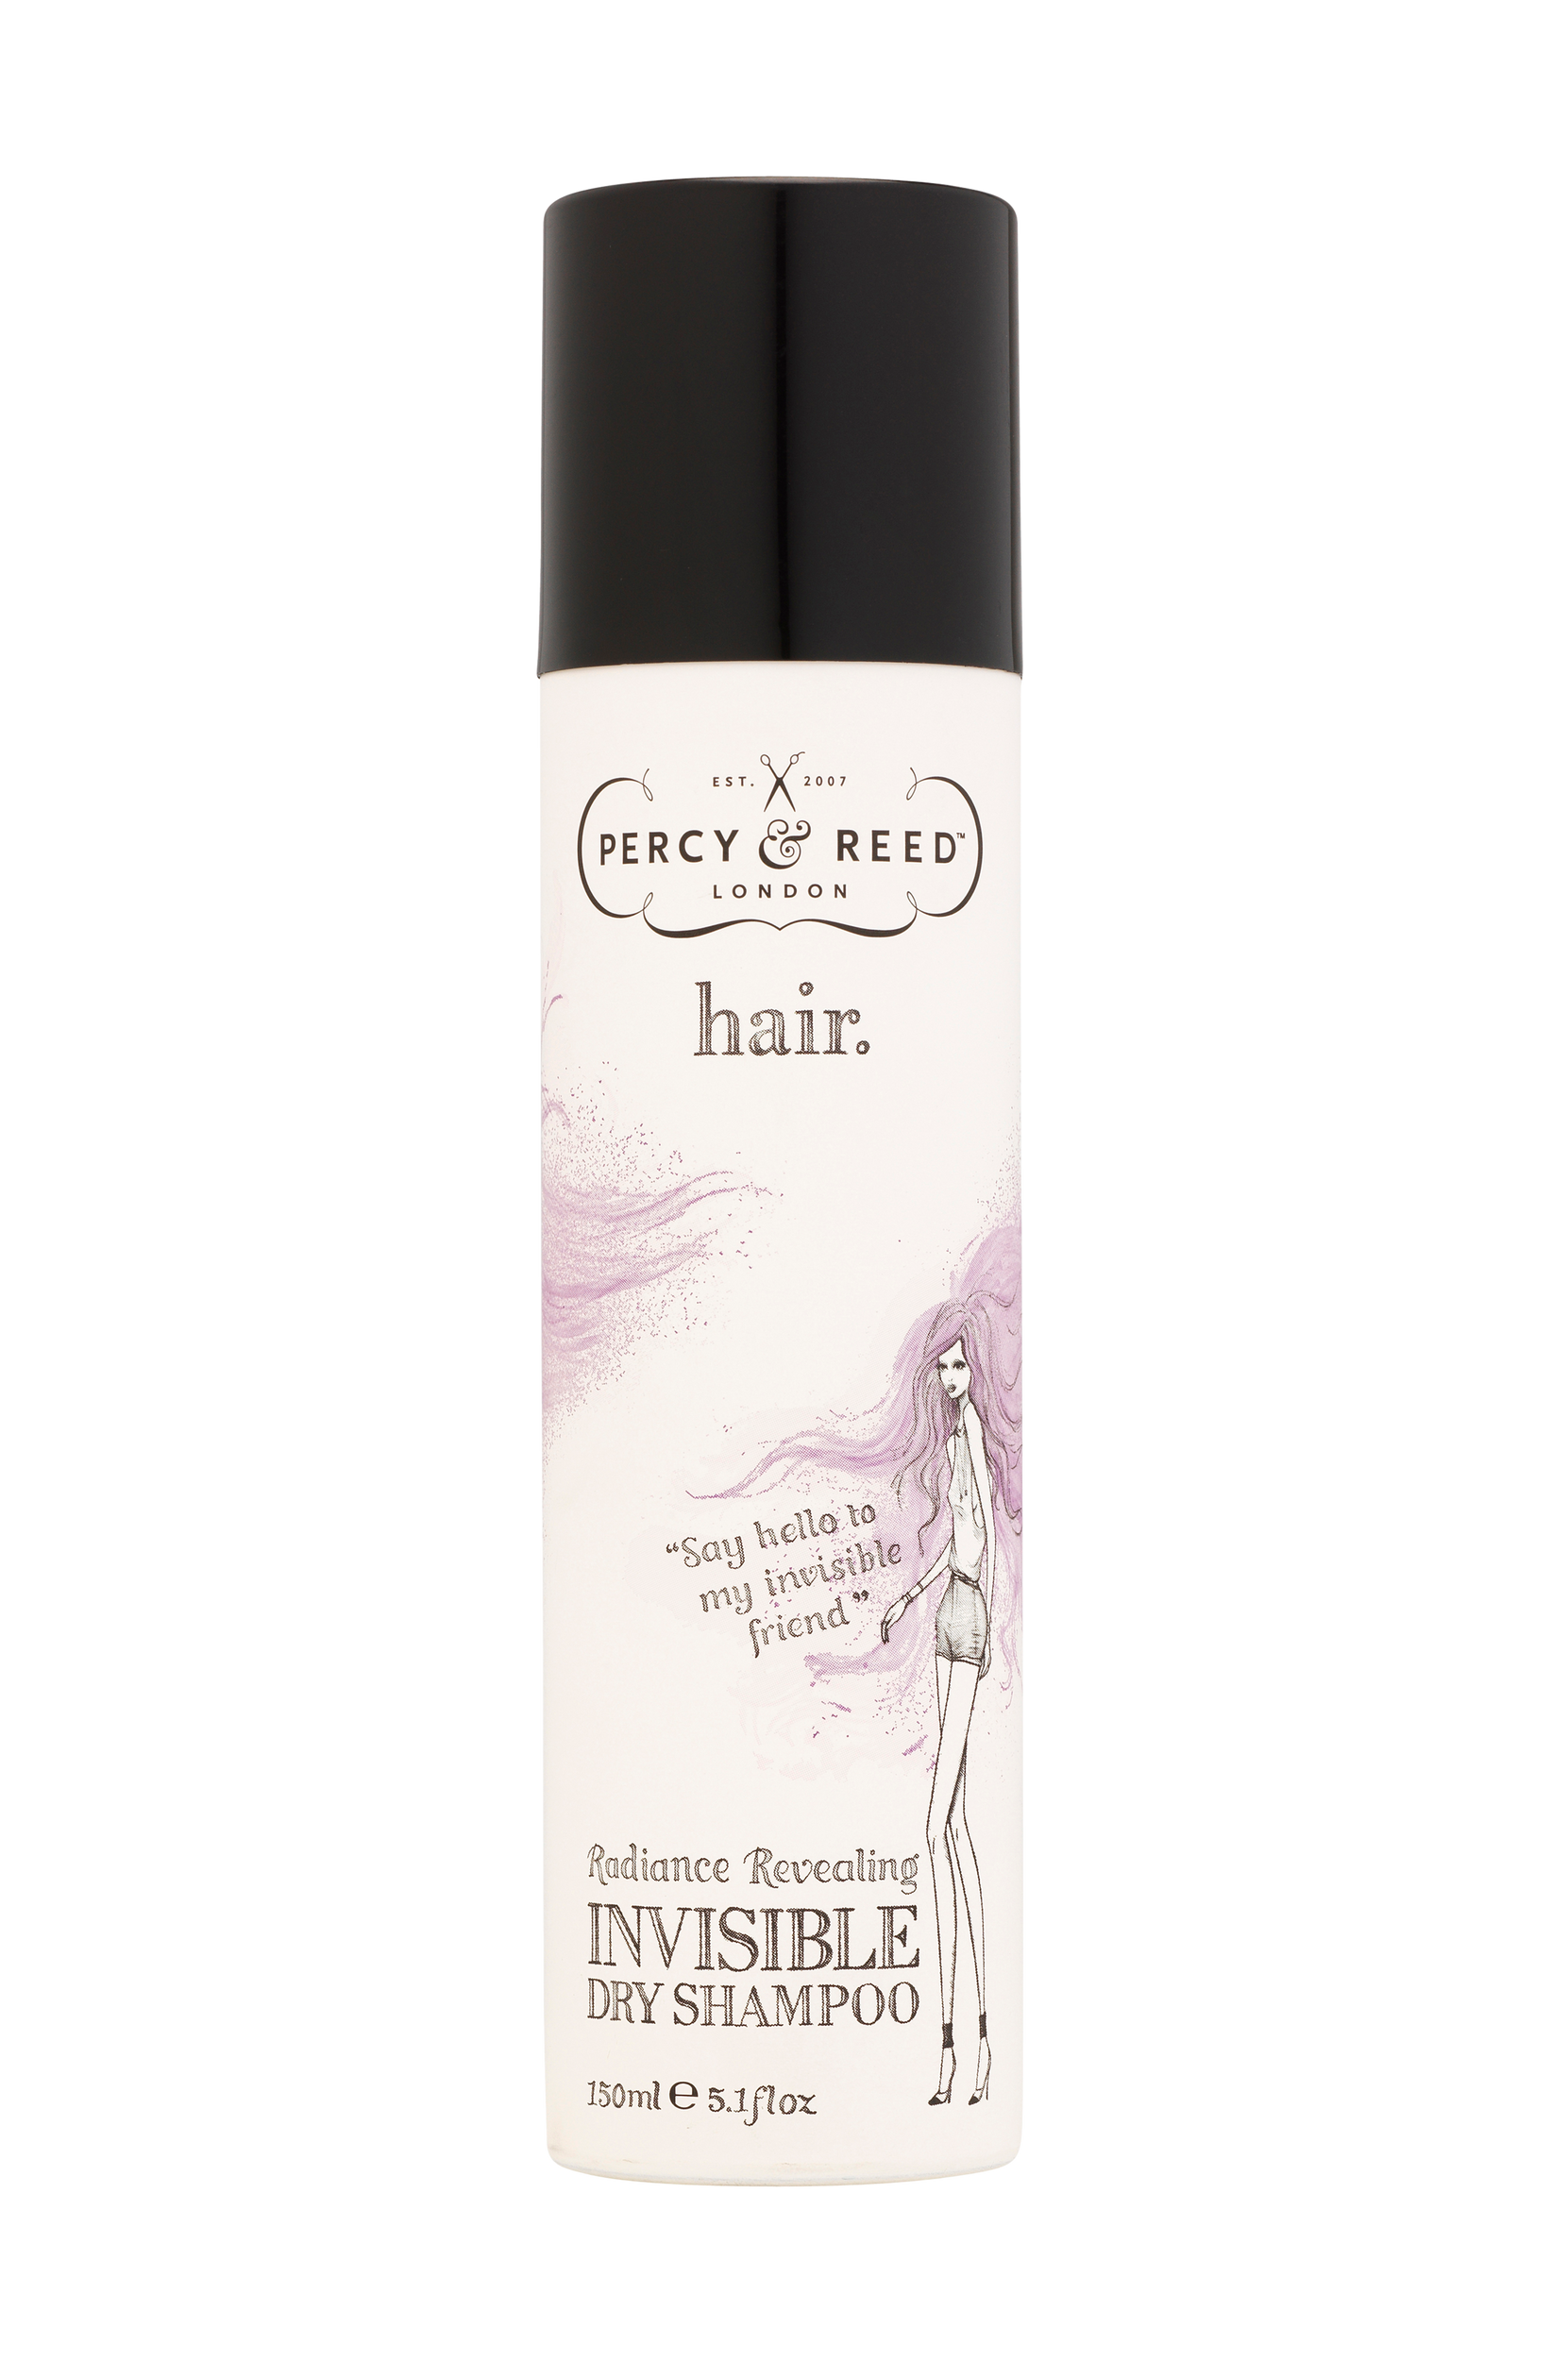 Radiance Revaling Invisible Dry Shampoo 150ml